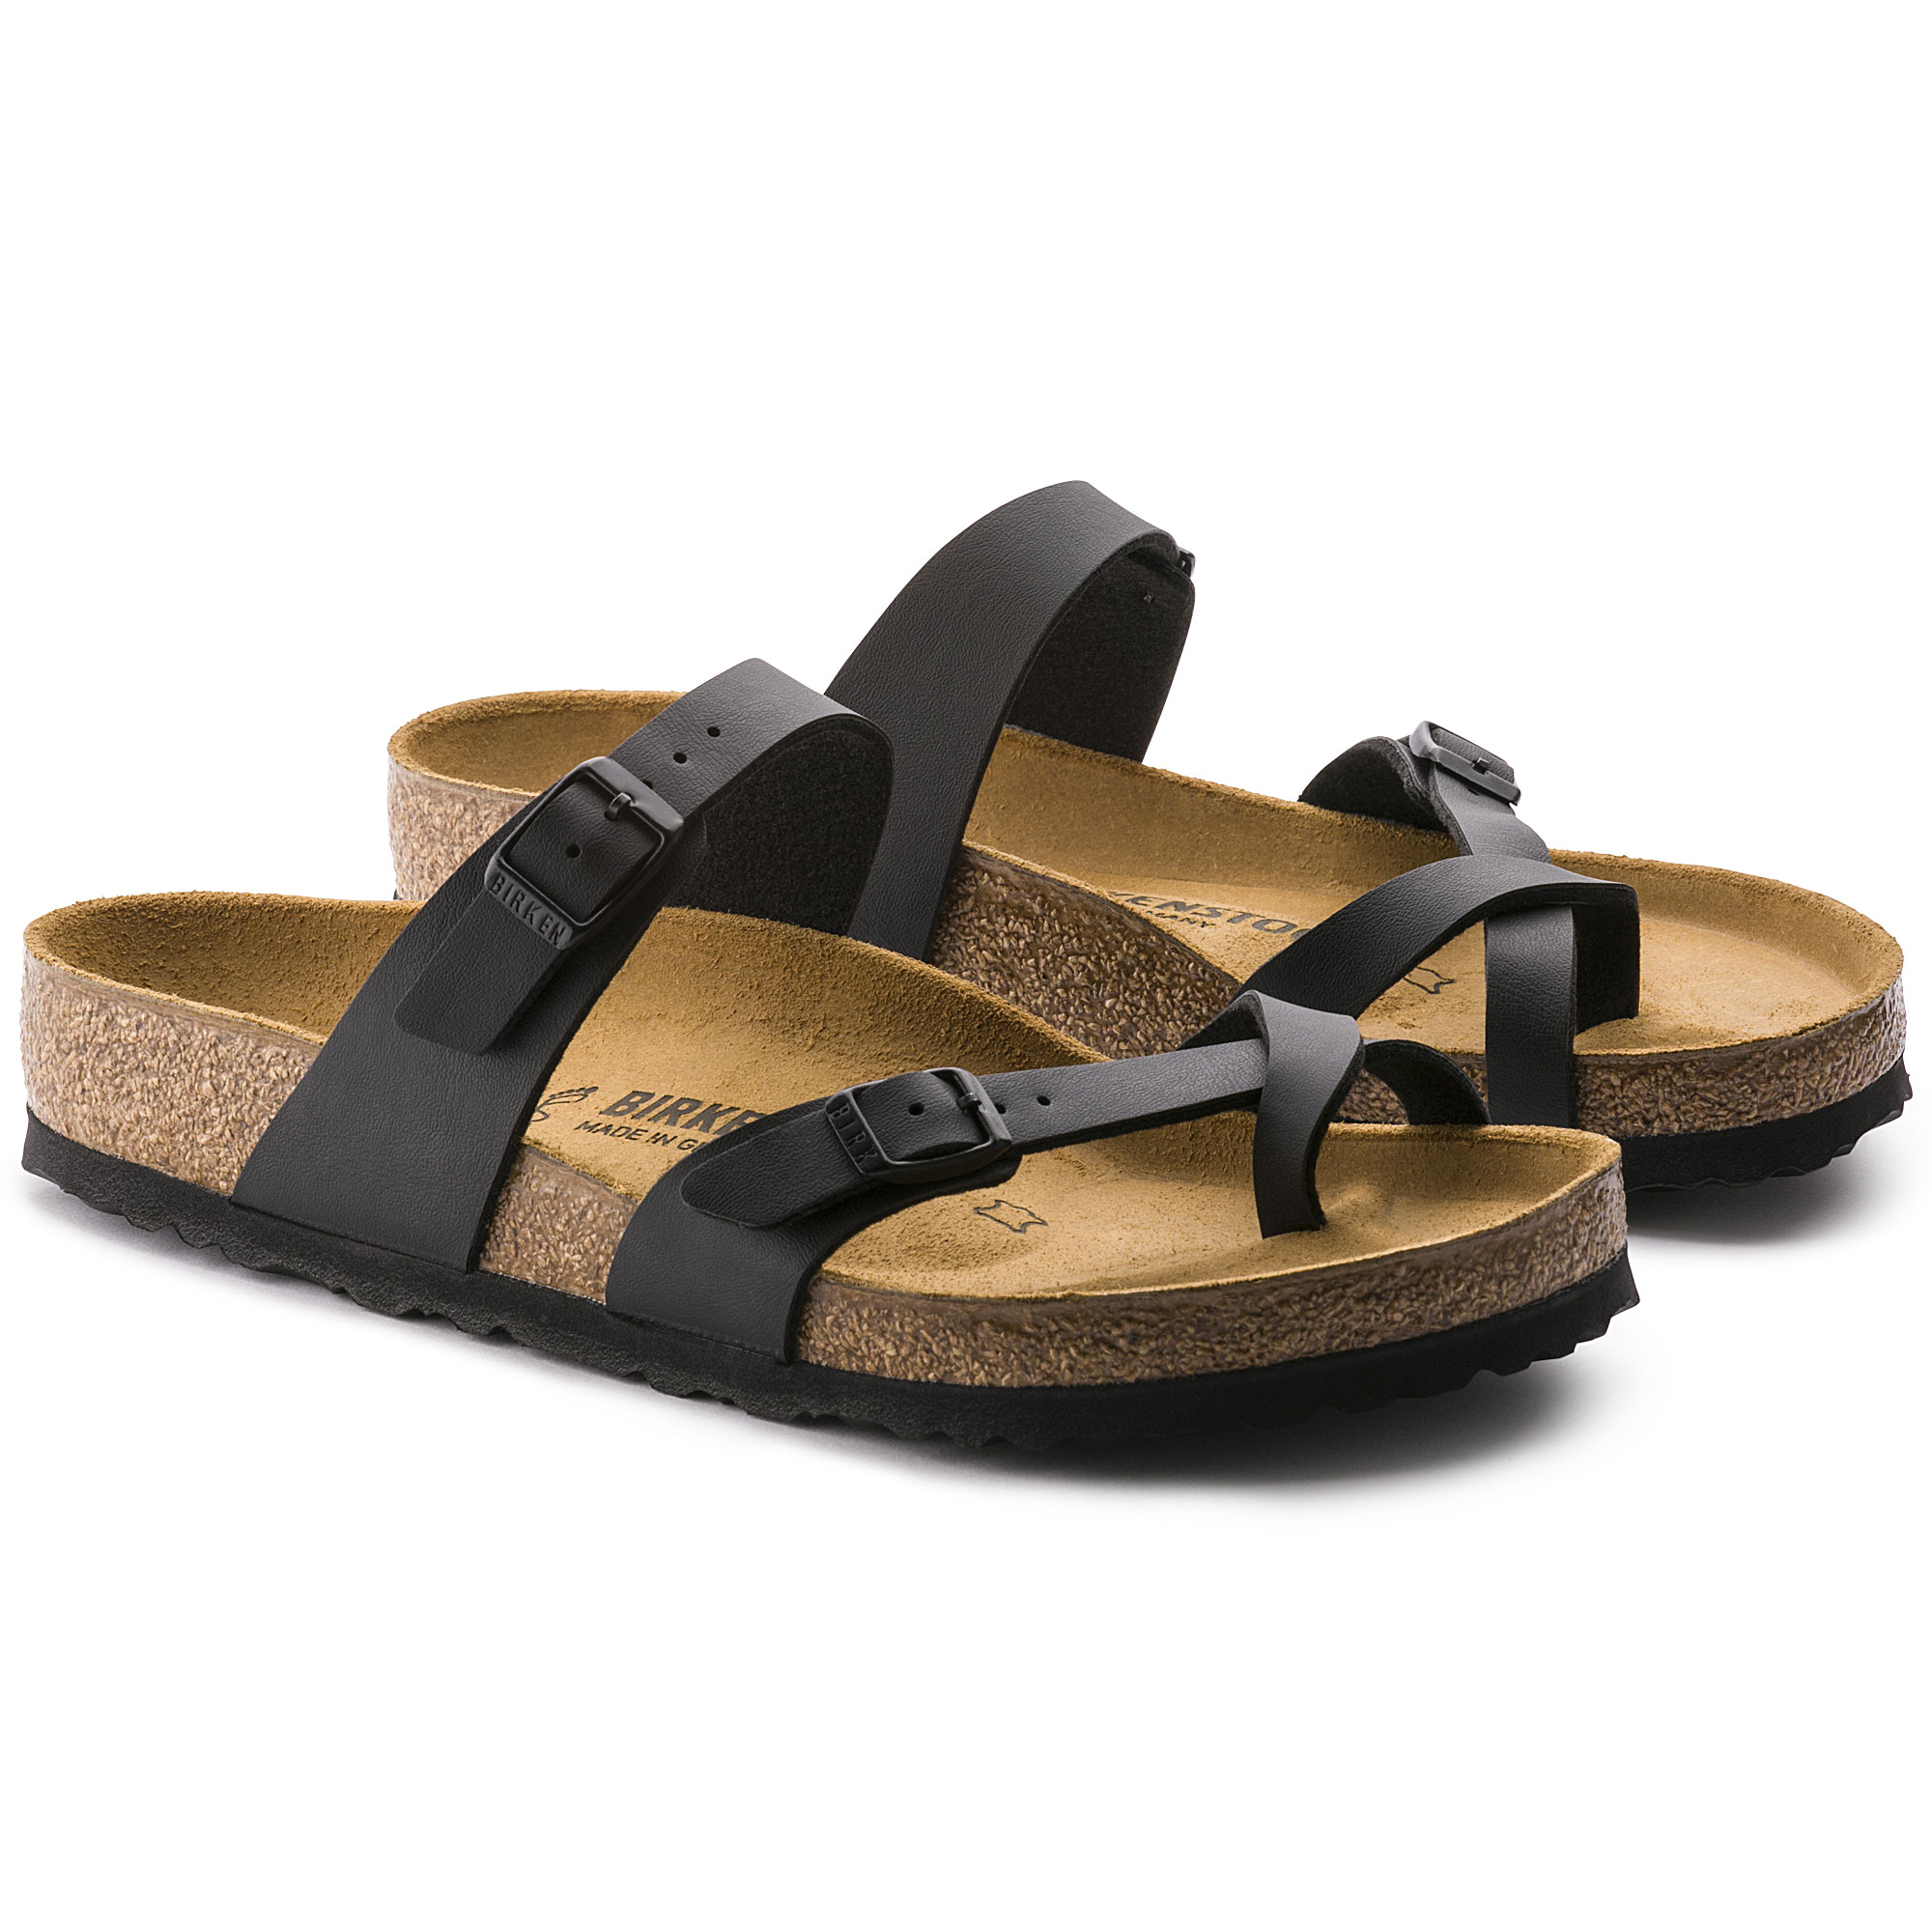 Birkenstock Mayari Birko Flor Black Sandals Women's Shoes